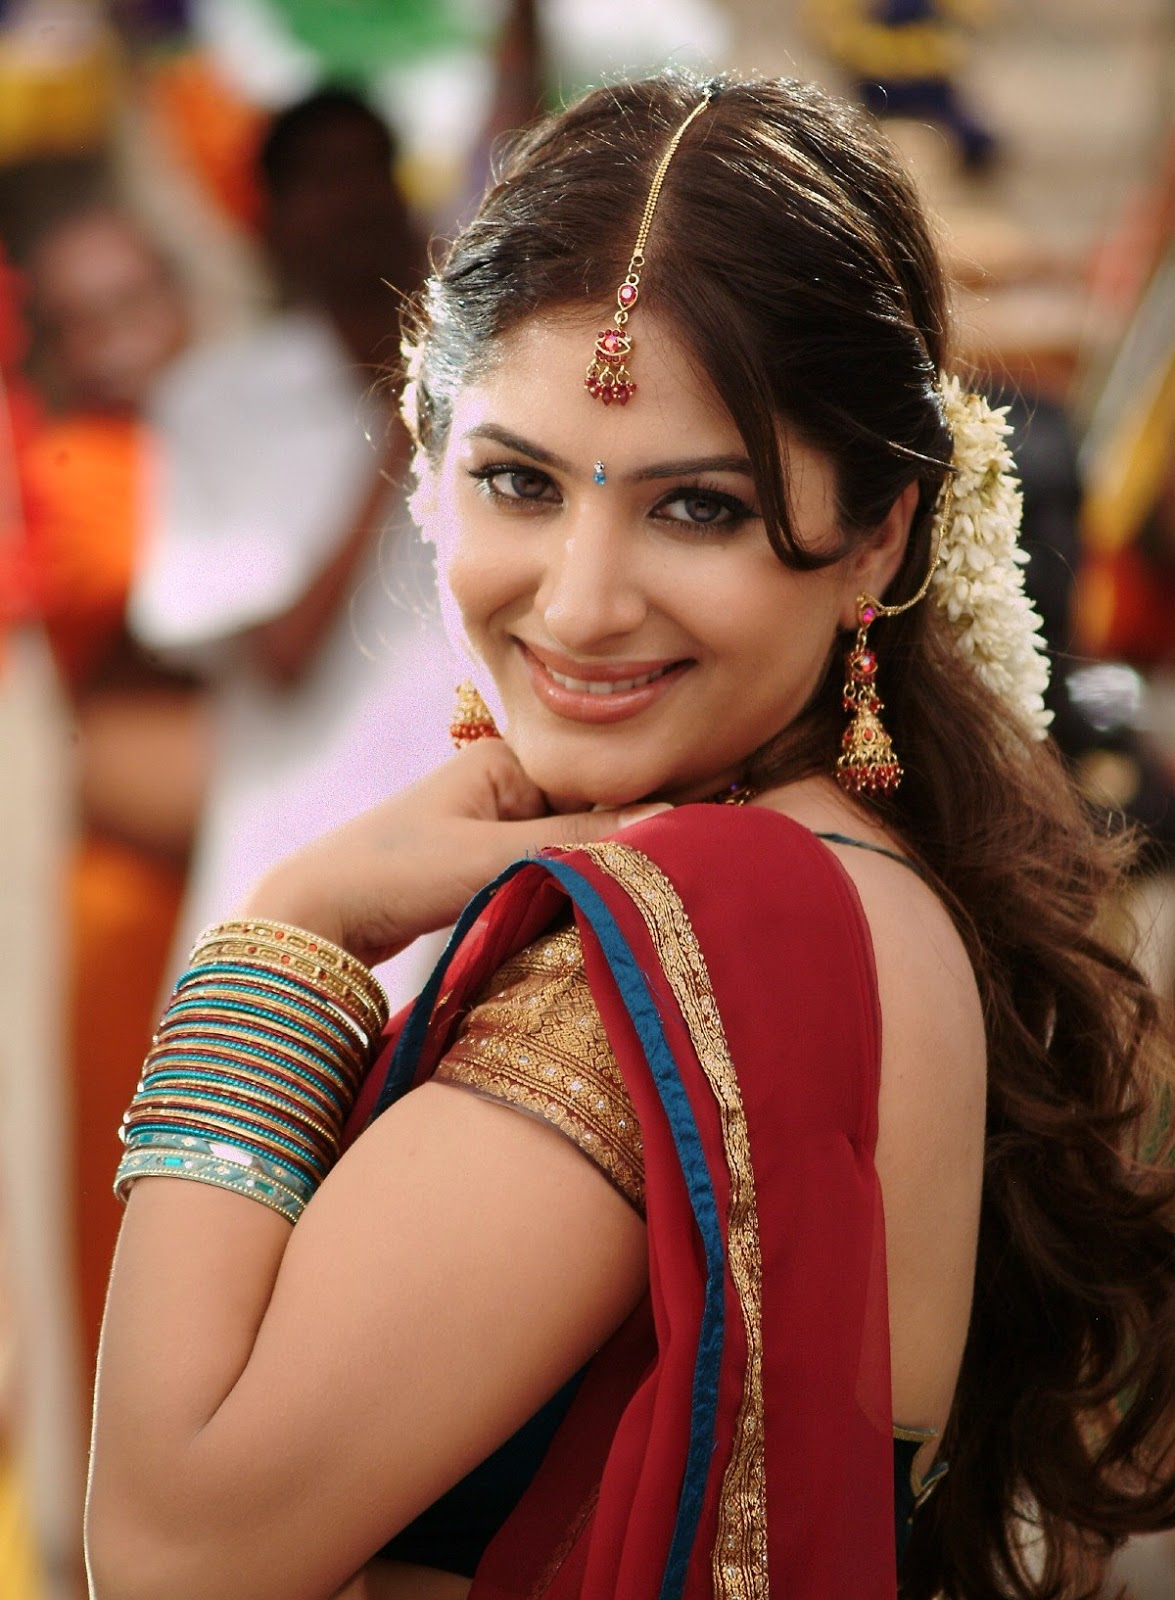 Gowri Munjal Beautiful In Traditional South Indian Getup